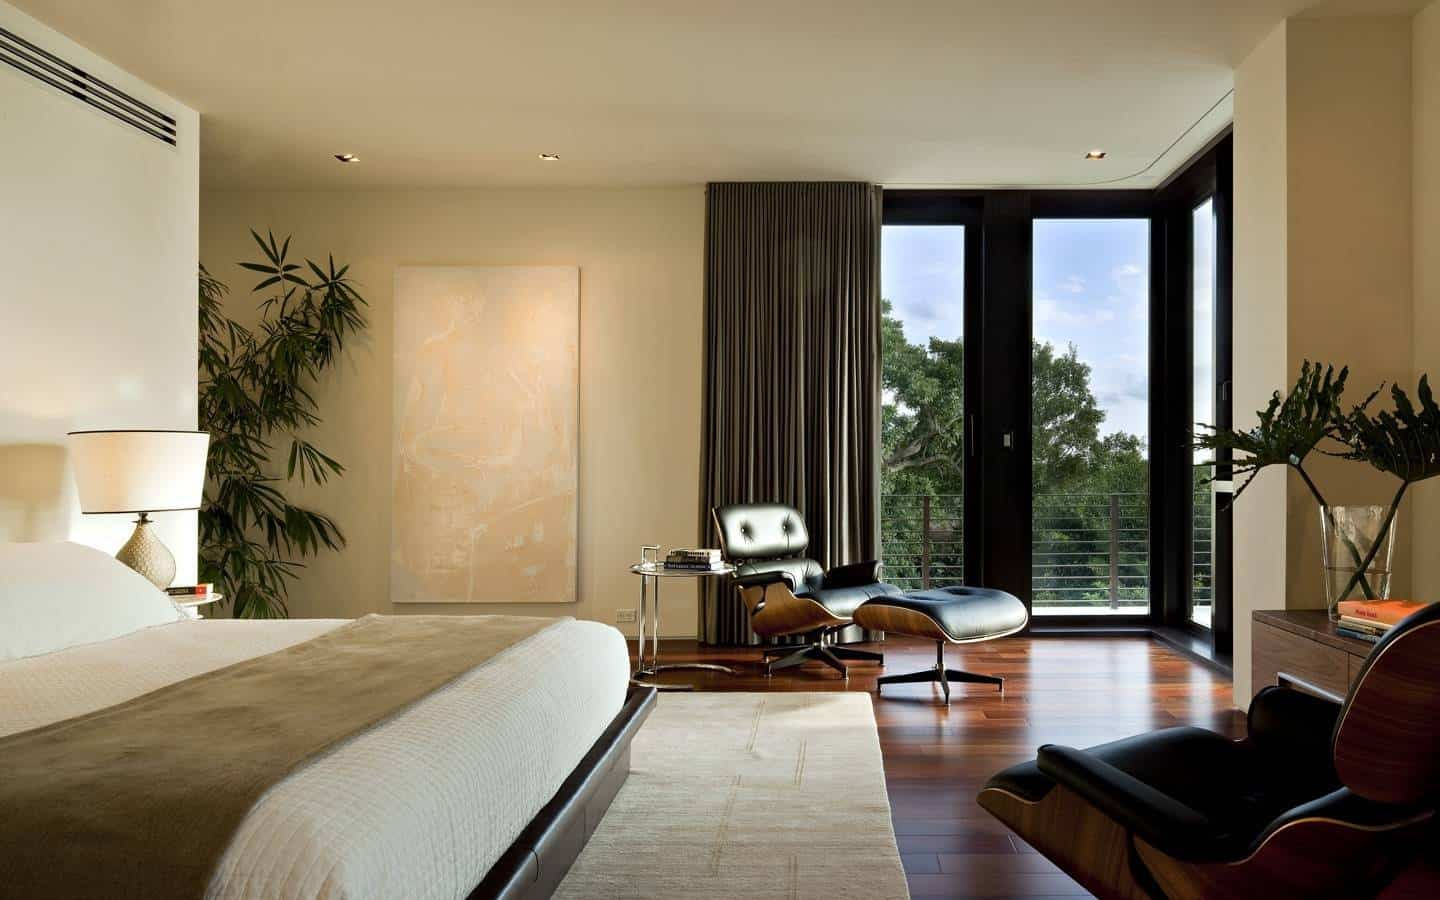 A large primary bedroom boasting a nice sitting lounge near the doorway leading to the private balcony. The room features elegant hardwood flooring.